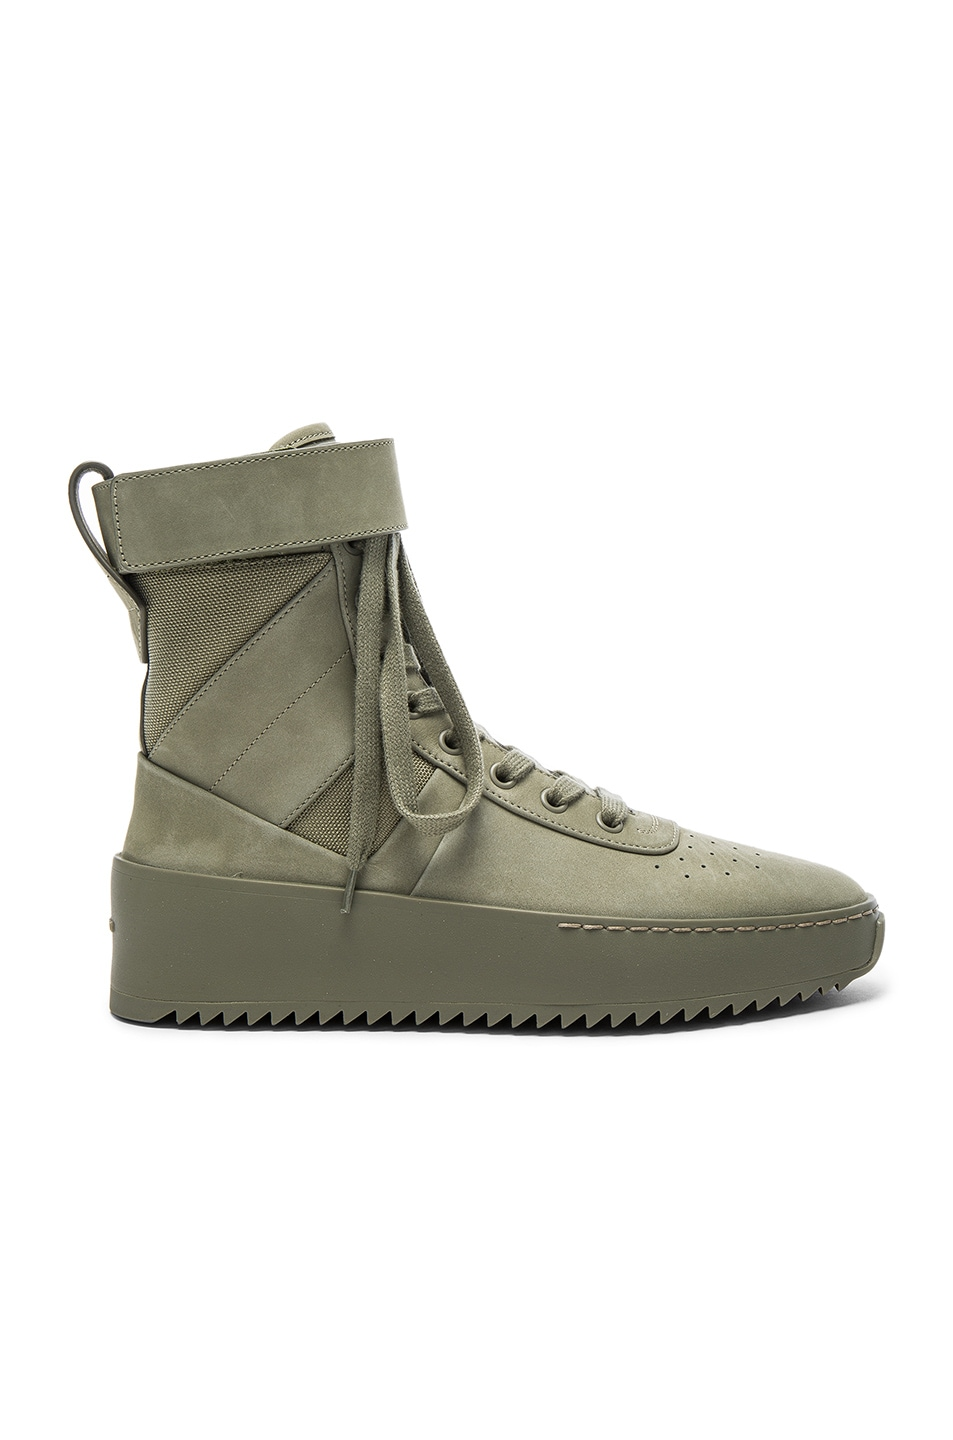 Image 1 of Fear of God Nubuck Leather Military Sneakers in Army Green